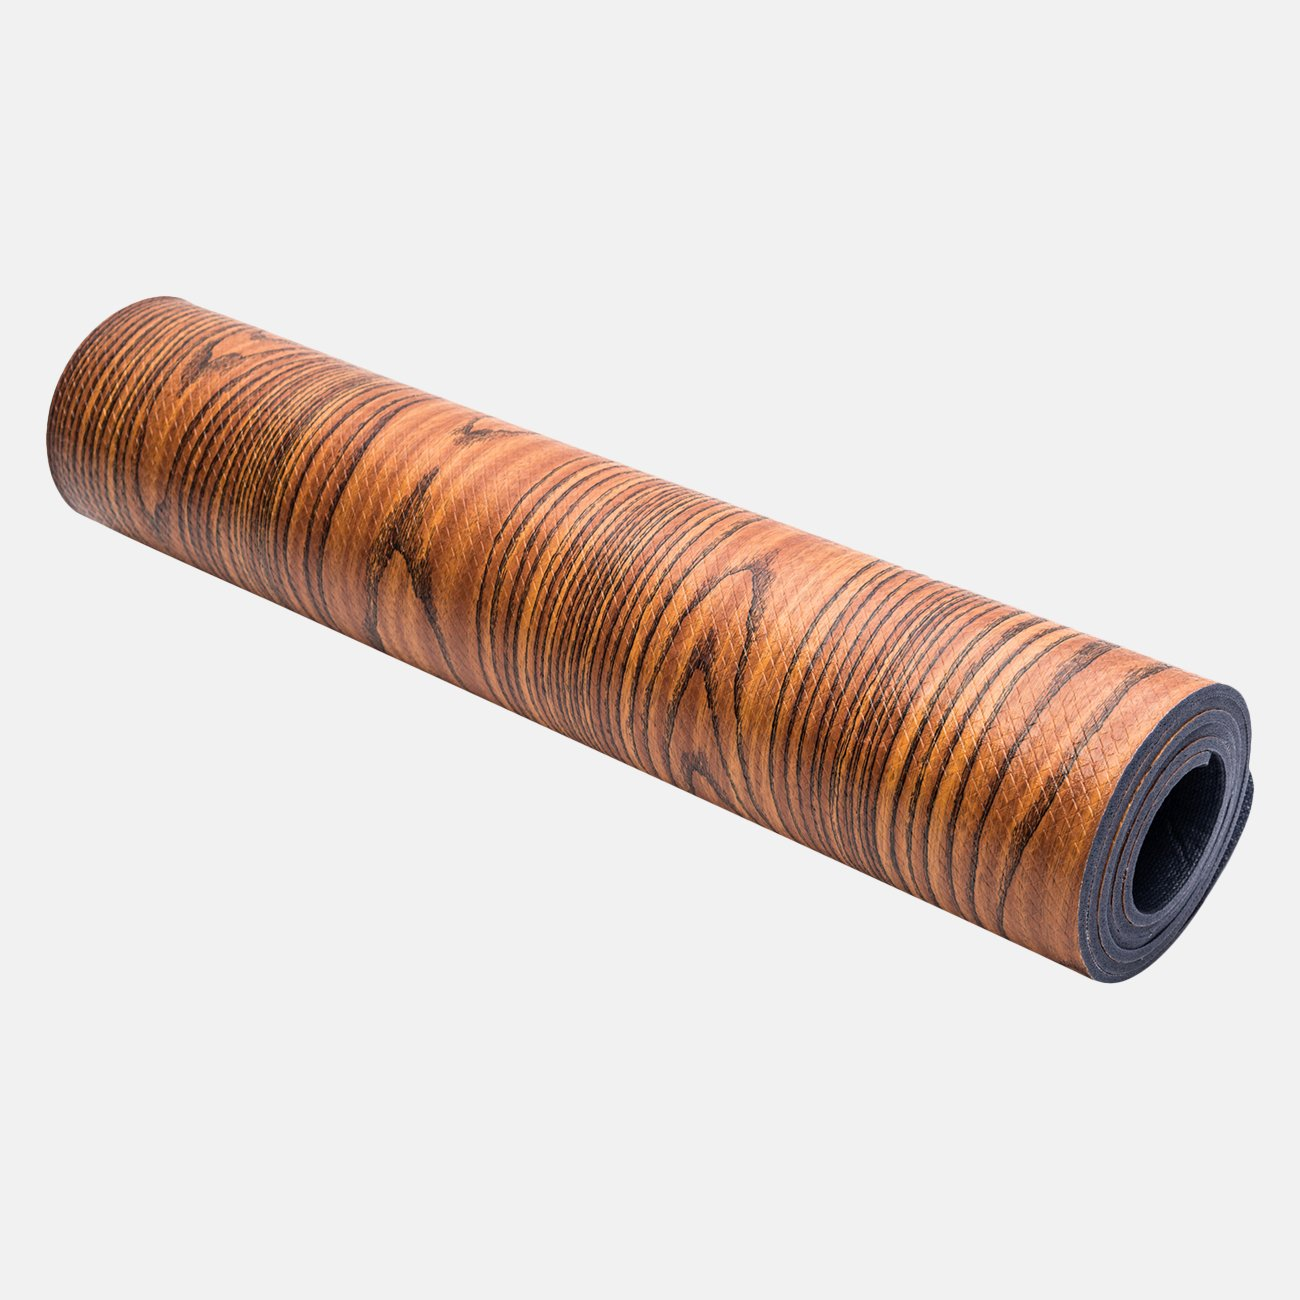 Wood Grain Yoga Mat